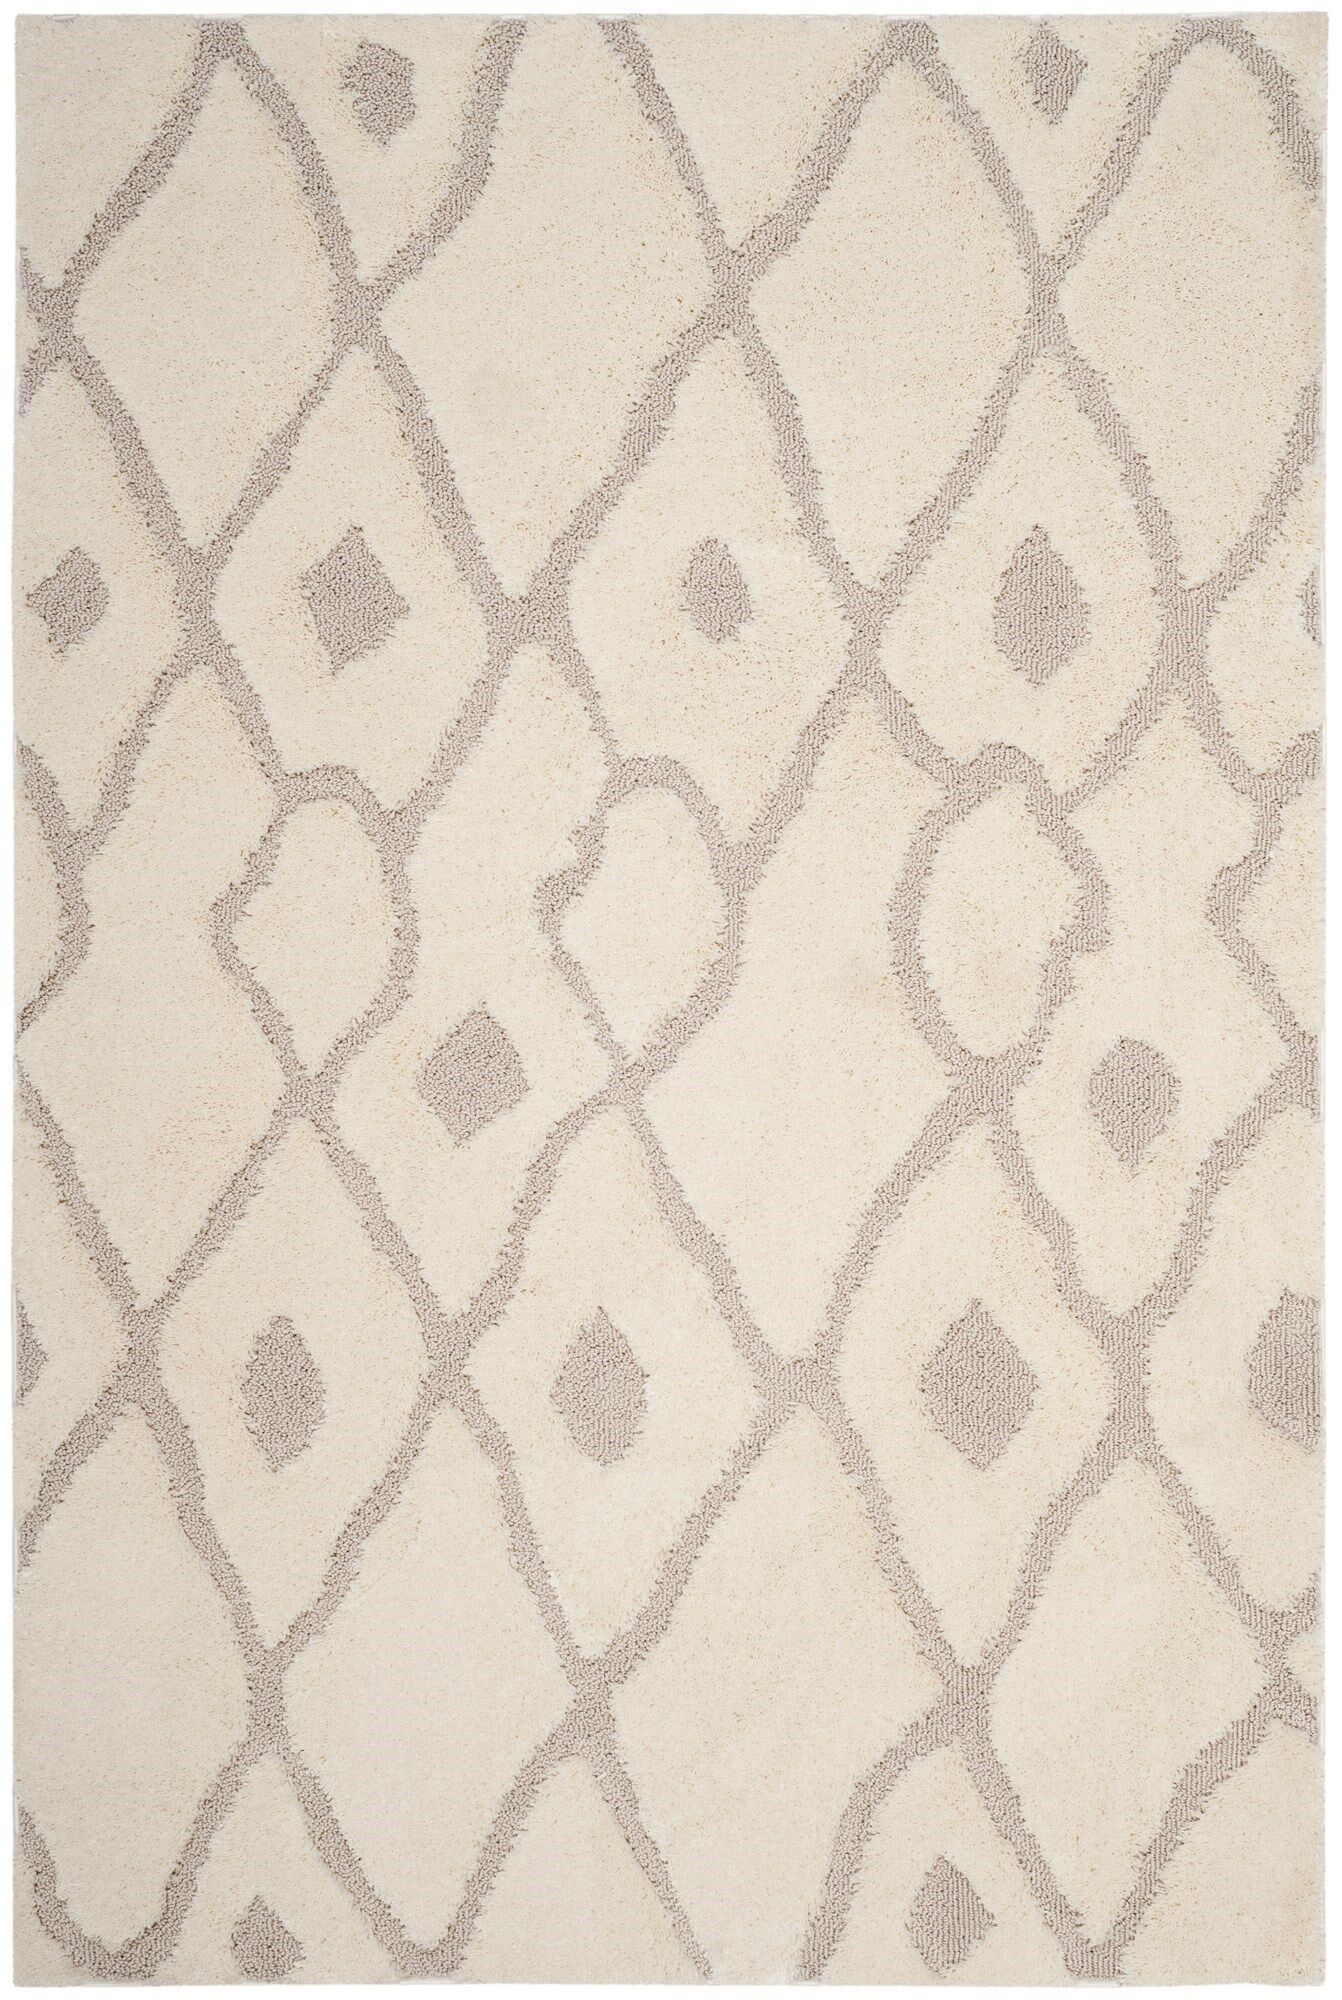 Helms Cream/Brown Area Rug Rug Size: Rectangle 4' x 6'